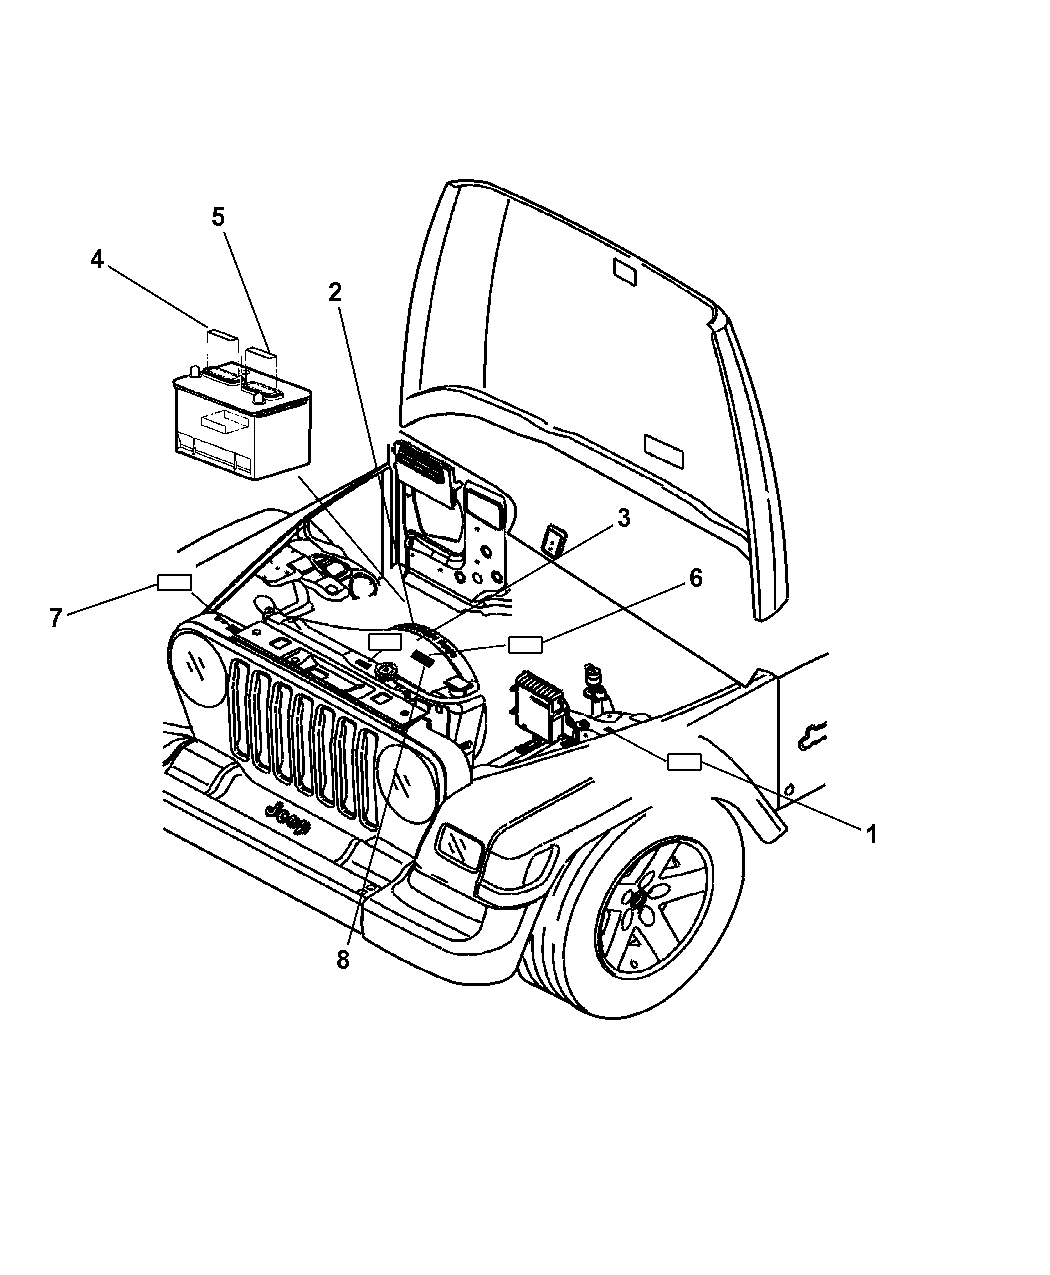 Circuit Electric For Guide: 2007 jeep wrangler engine diagram